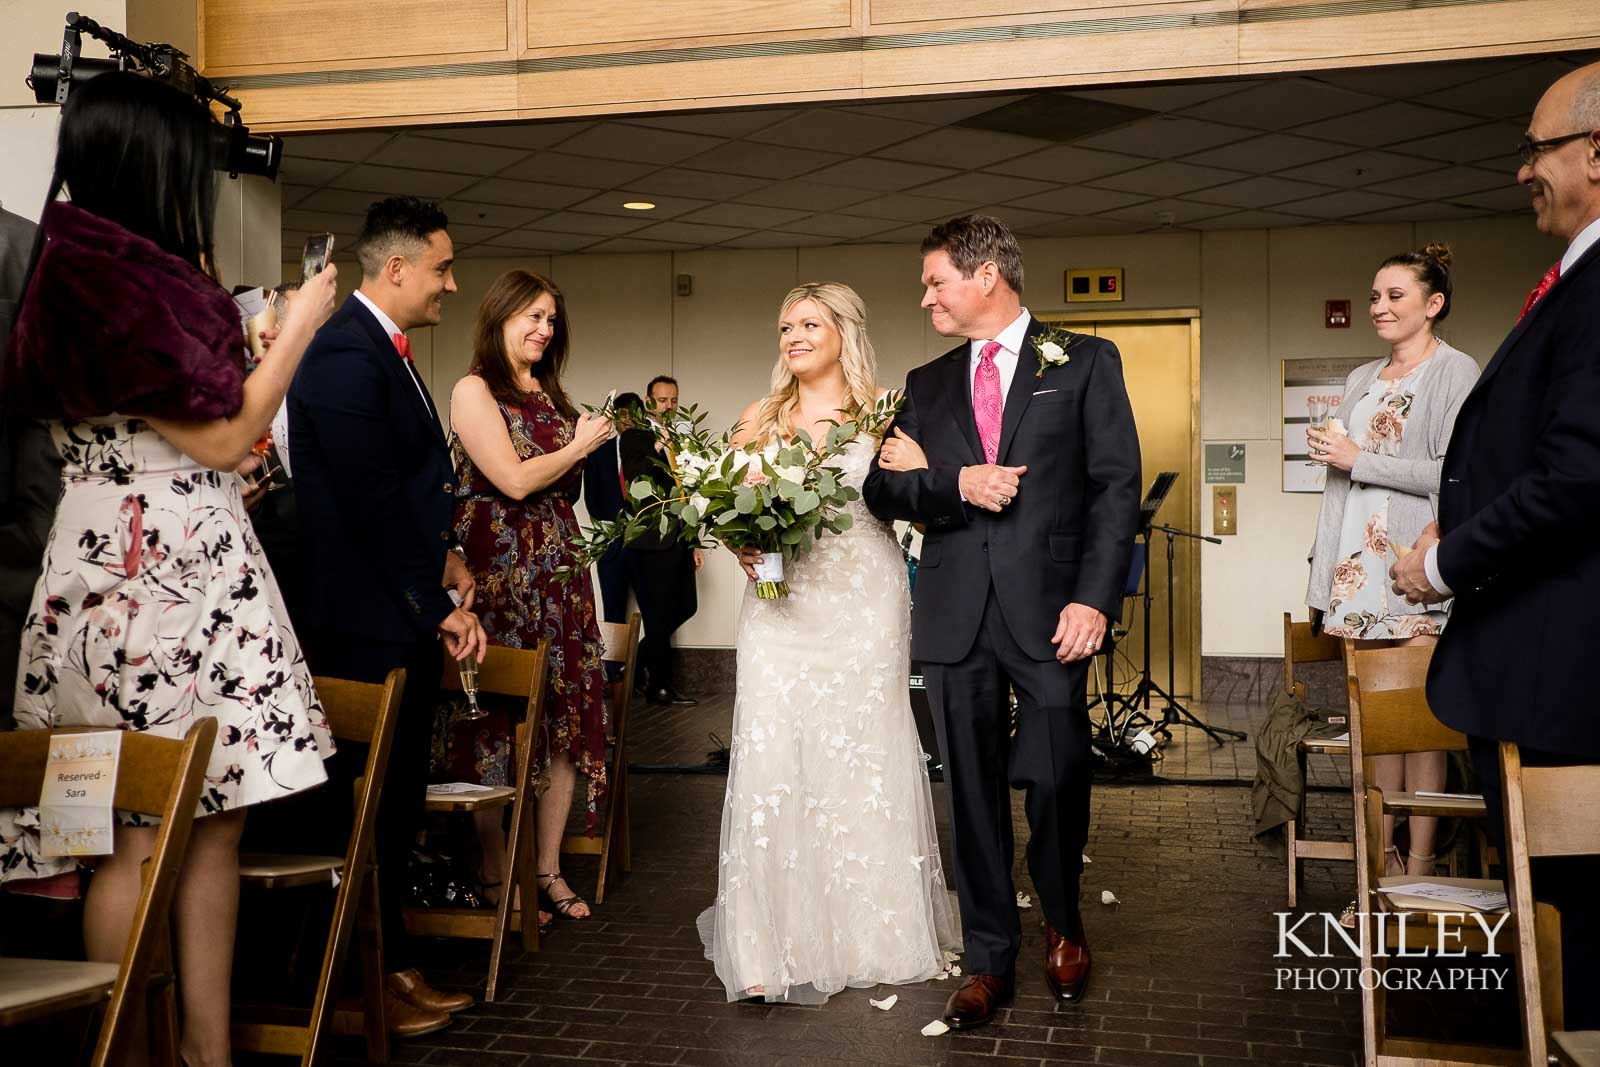 21-Max-of-Eastman-Wedding-and-Reception-Rochester-NY-Kniley-Photography.jpg